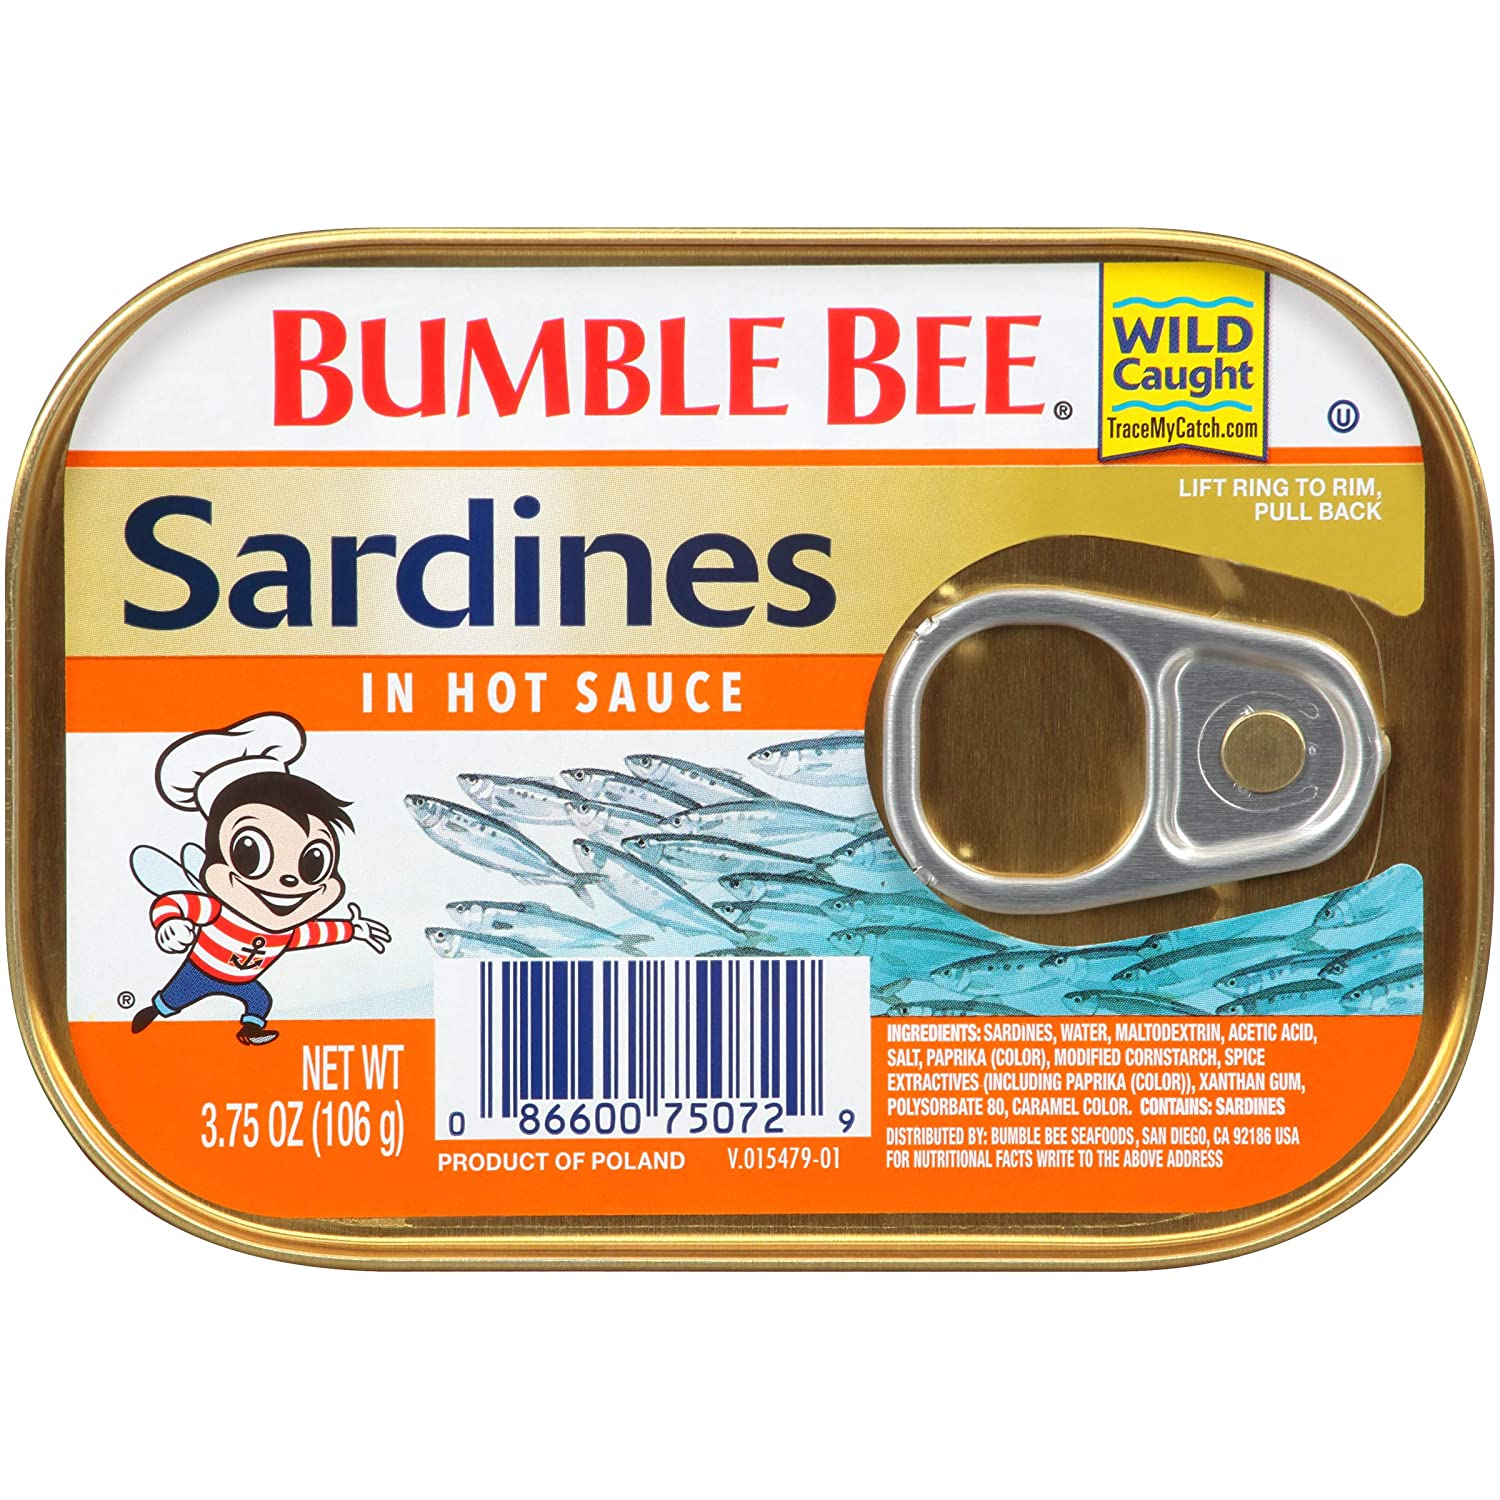 BUMBLE BEE Sardines in Hot Sauce, 3.75 Ounce Can (Pack of 18), Canned Sardines, High Protein Food, Keto Food, Keto Snacks, Gluten Free Food, Canned Food, Low Carb Snacks